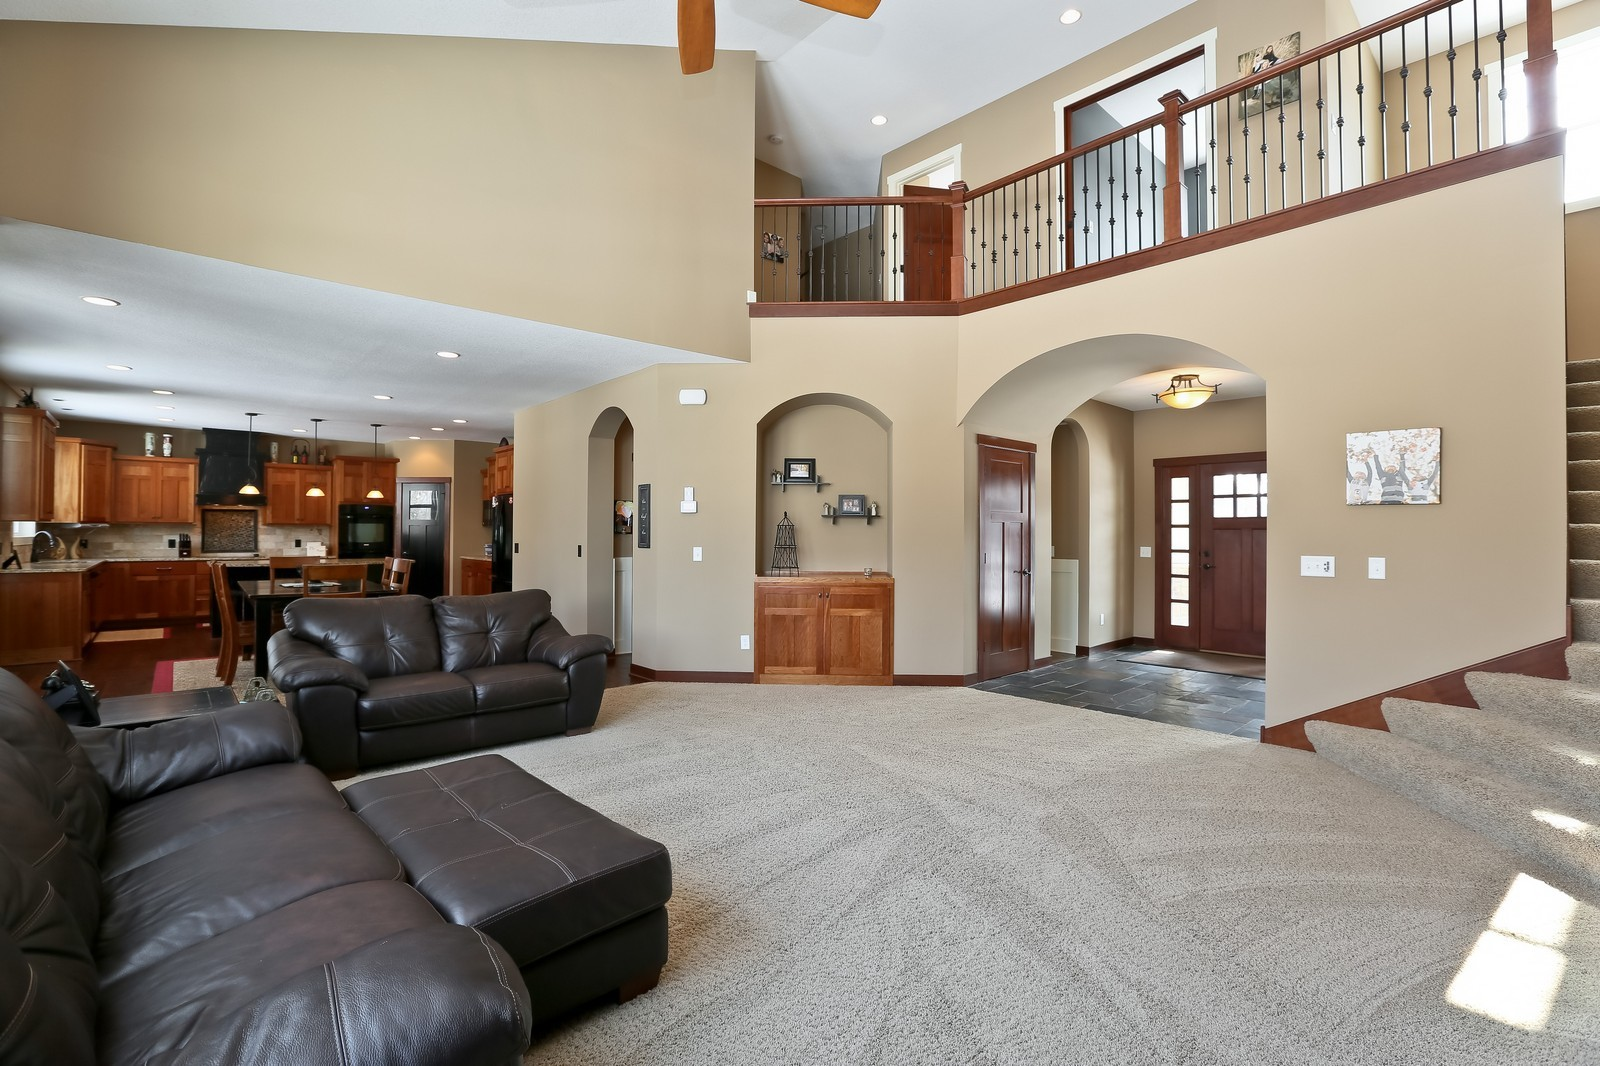 Real Estate Photography - 859 Fox Rd, Lino Lakes, MN, 55014 - Location 1